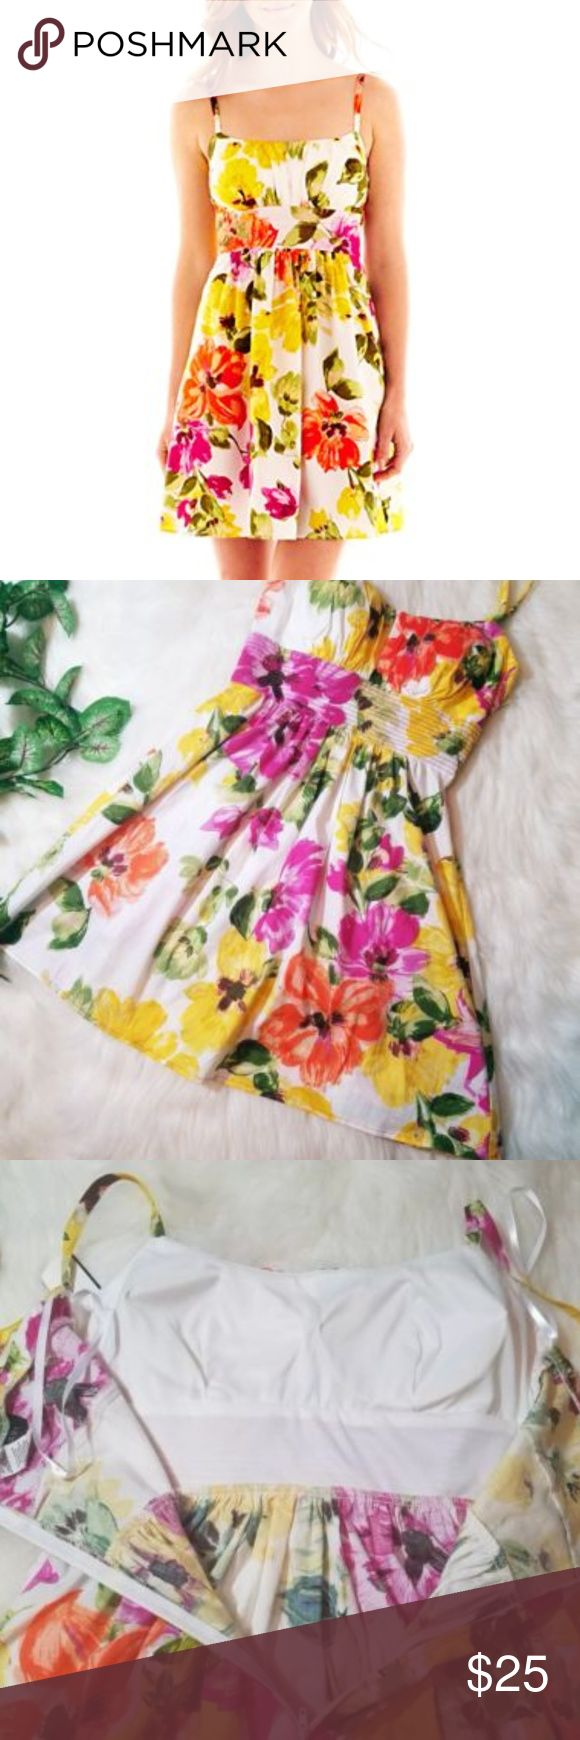 Garden Party Floral Sundress Full Skirt Perfect for any upcoming Spring or Summer gathering. Fancy enough for Graduation or Weddings, yet casual and comfortable enough for date night or a BBQ. Beautiful multi floral print with yellow, pink, orange and green. Thich spaghetti straps with zip up back. Padded chest with ruching, blocked waistlined that flows out to a full skirt. 97% cotton, 3% spandex. B. SMART Dresses